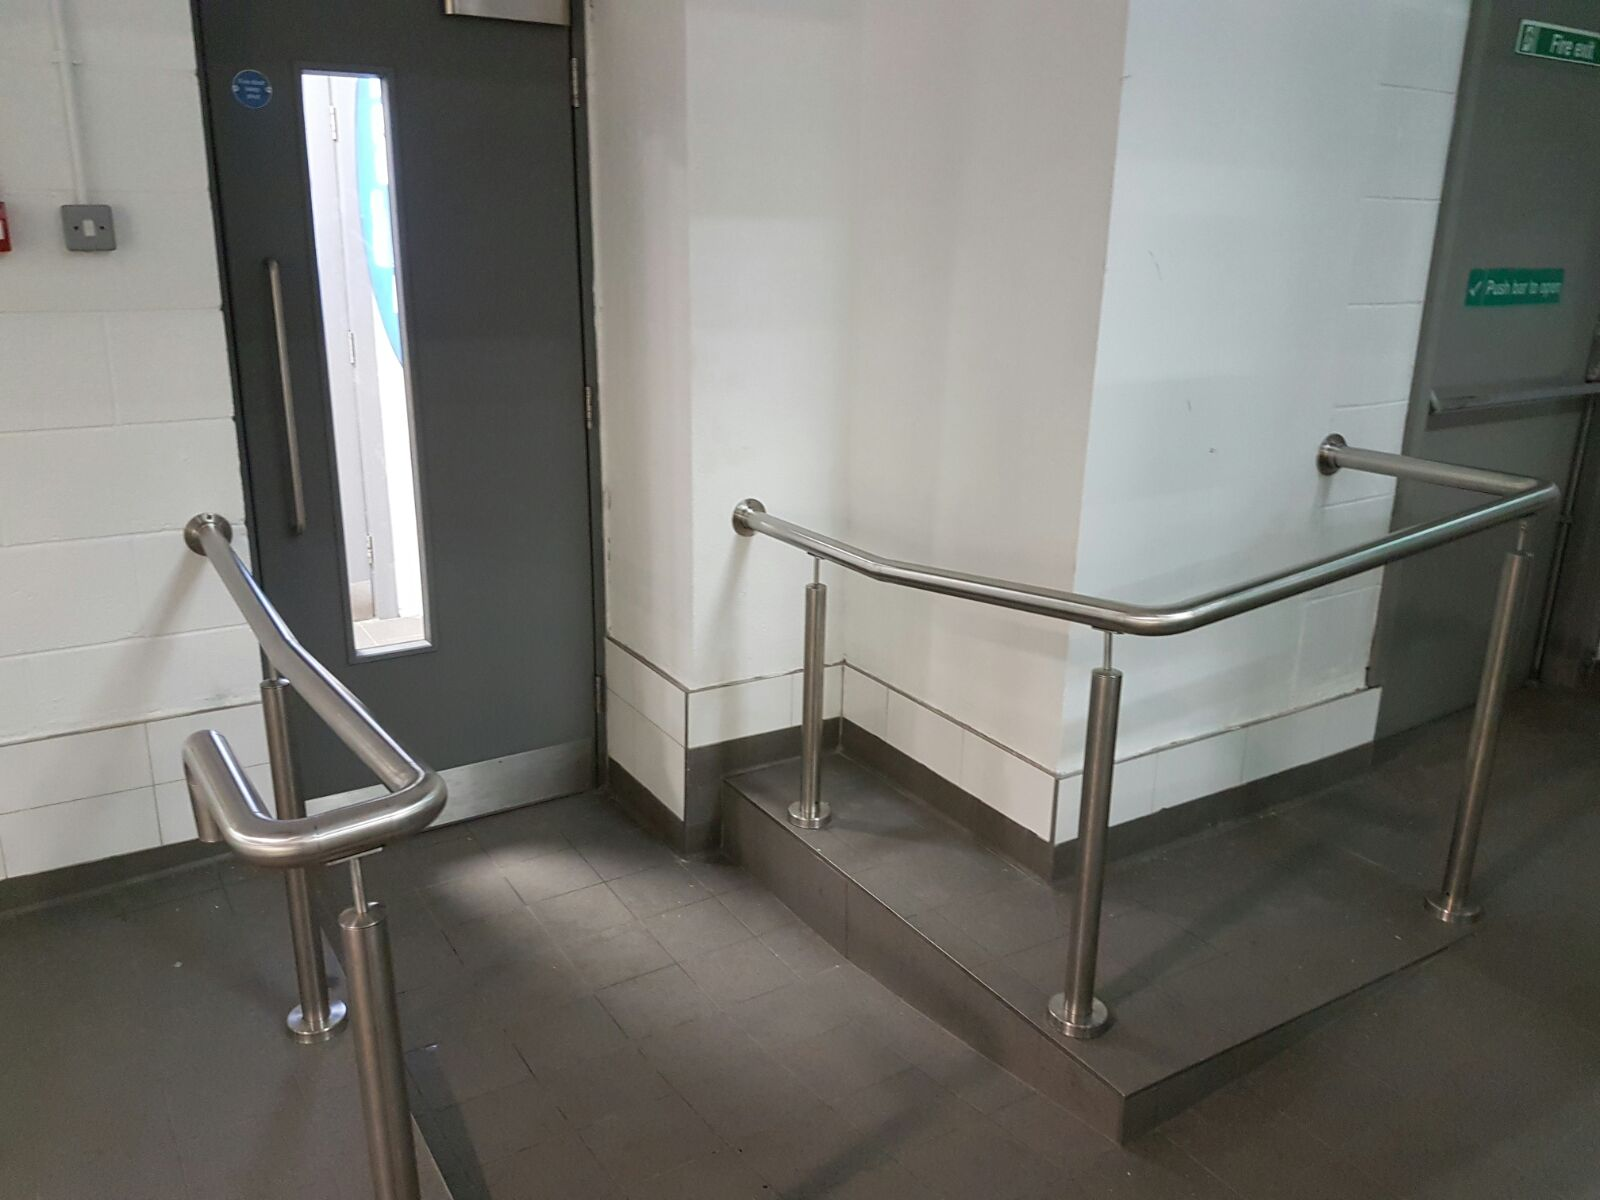 Stainless steel handrail 2